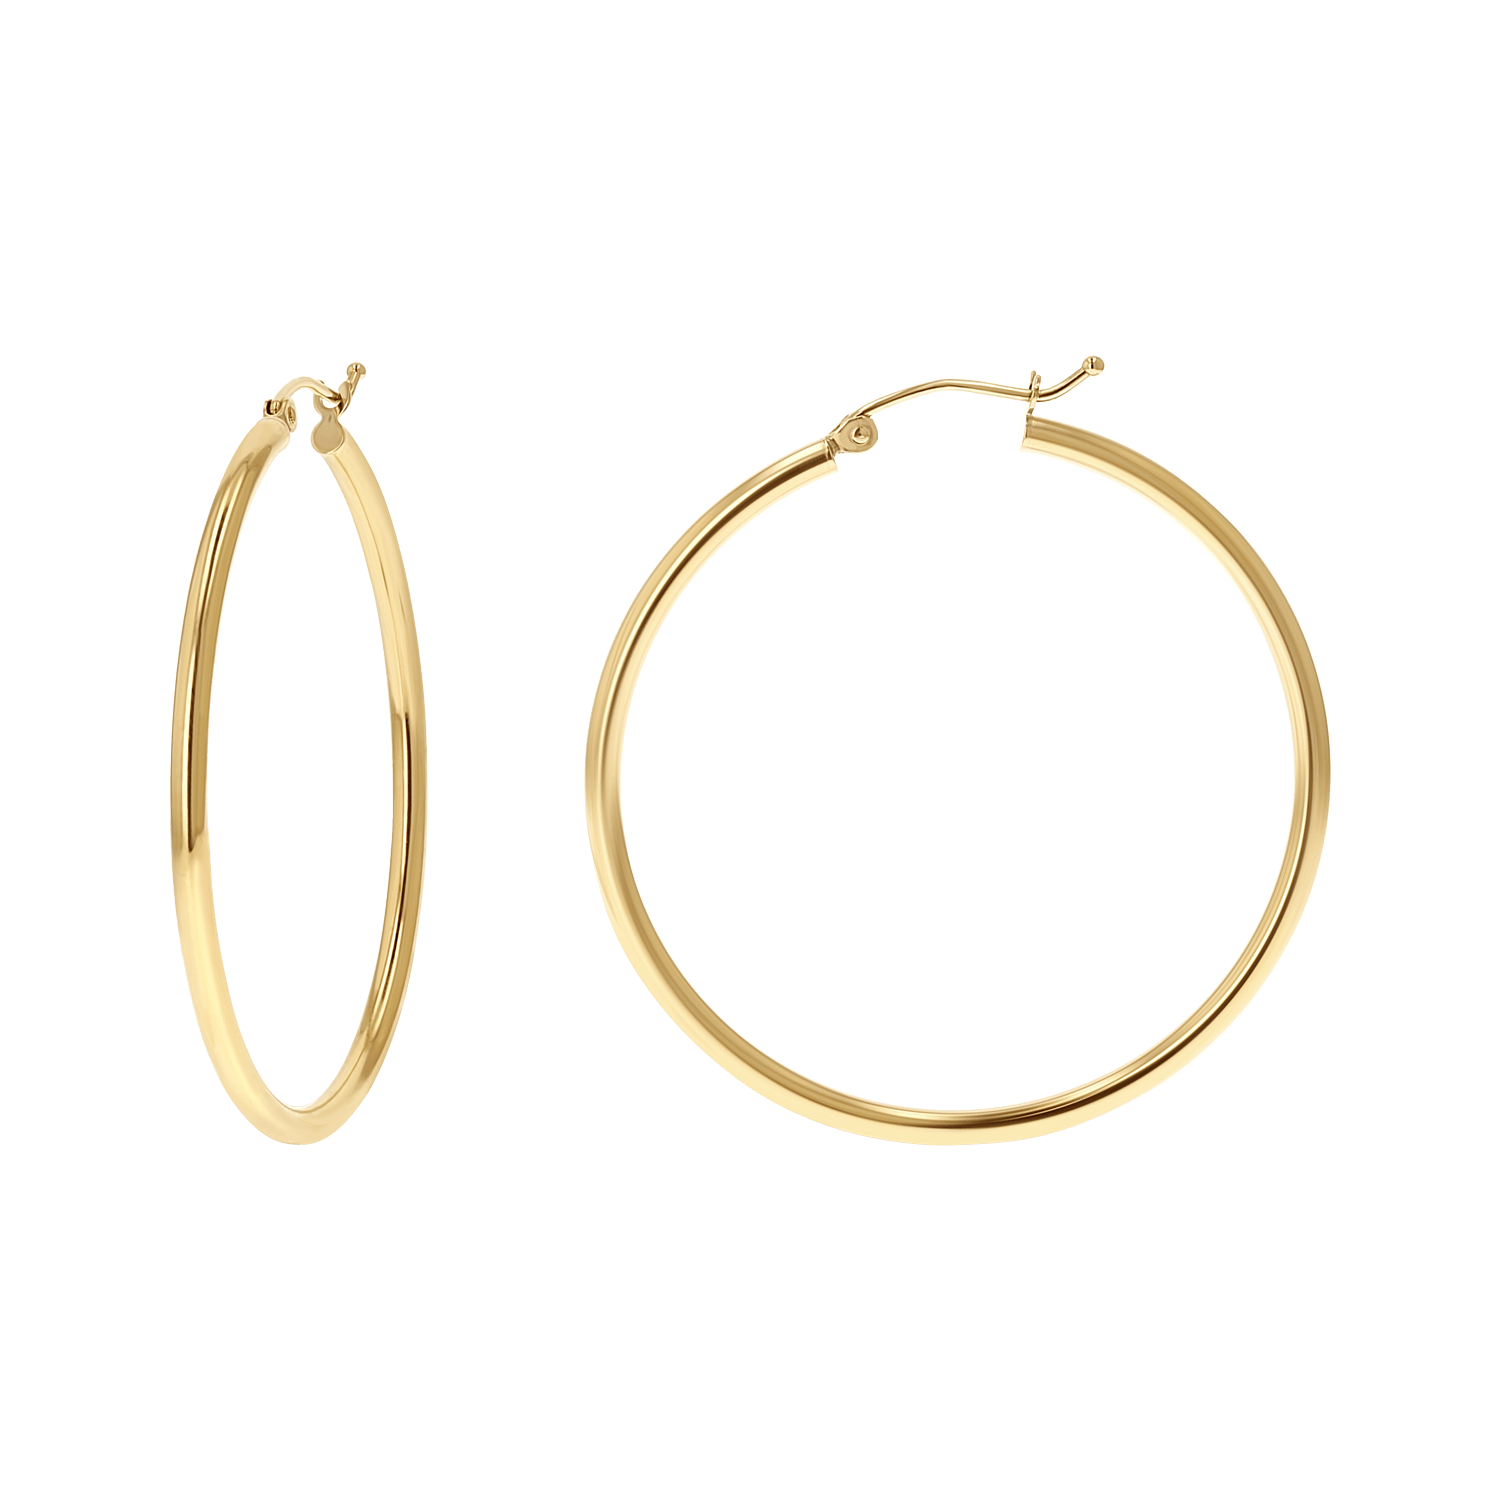 2mm Gold Tube Hoop Earrings